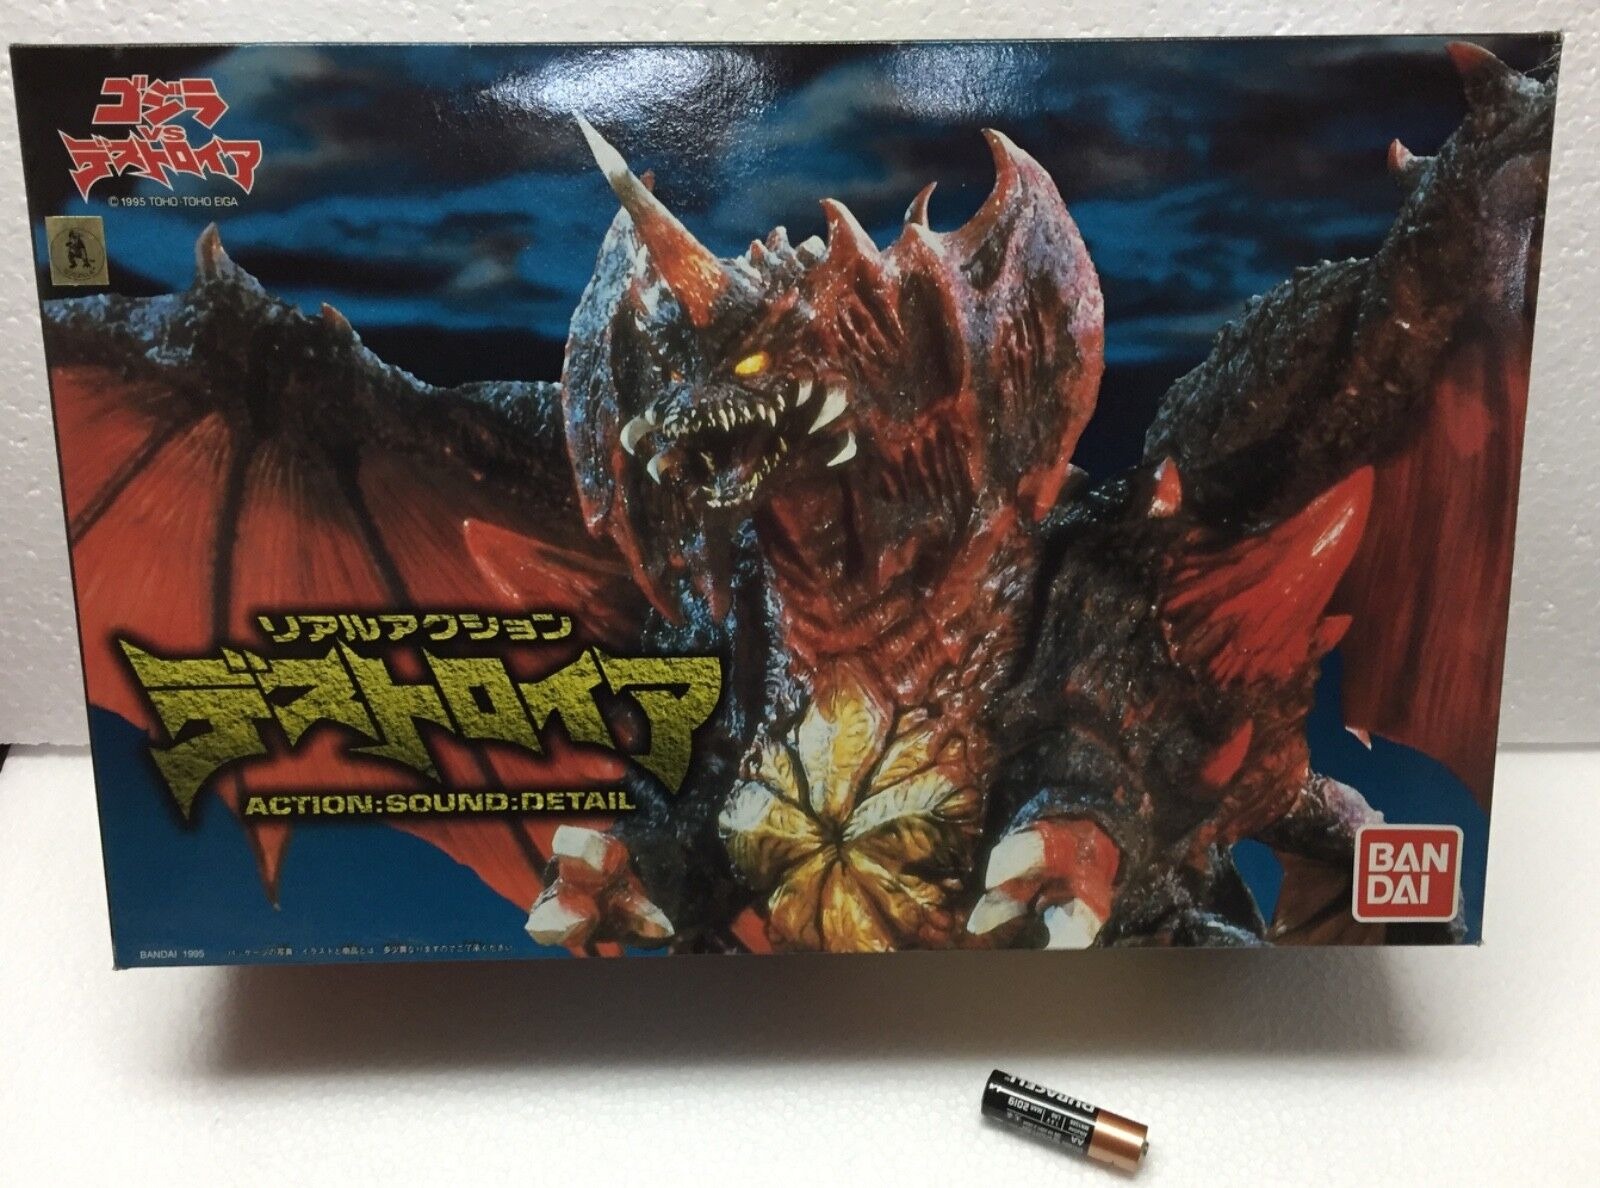 1995 1995 1995 BANDAI GODZILLA REAL DESTROYAH ACTION AND SOUND BATTERY OPERATED FIGURE 86d446